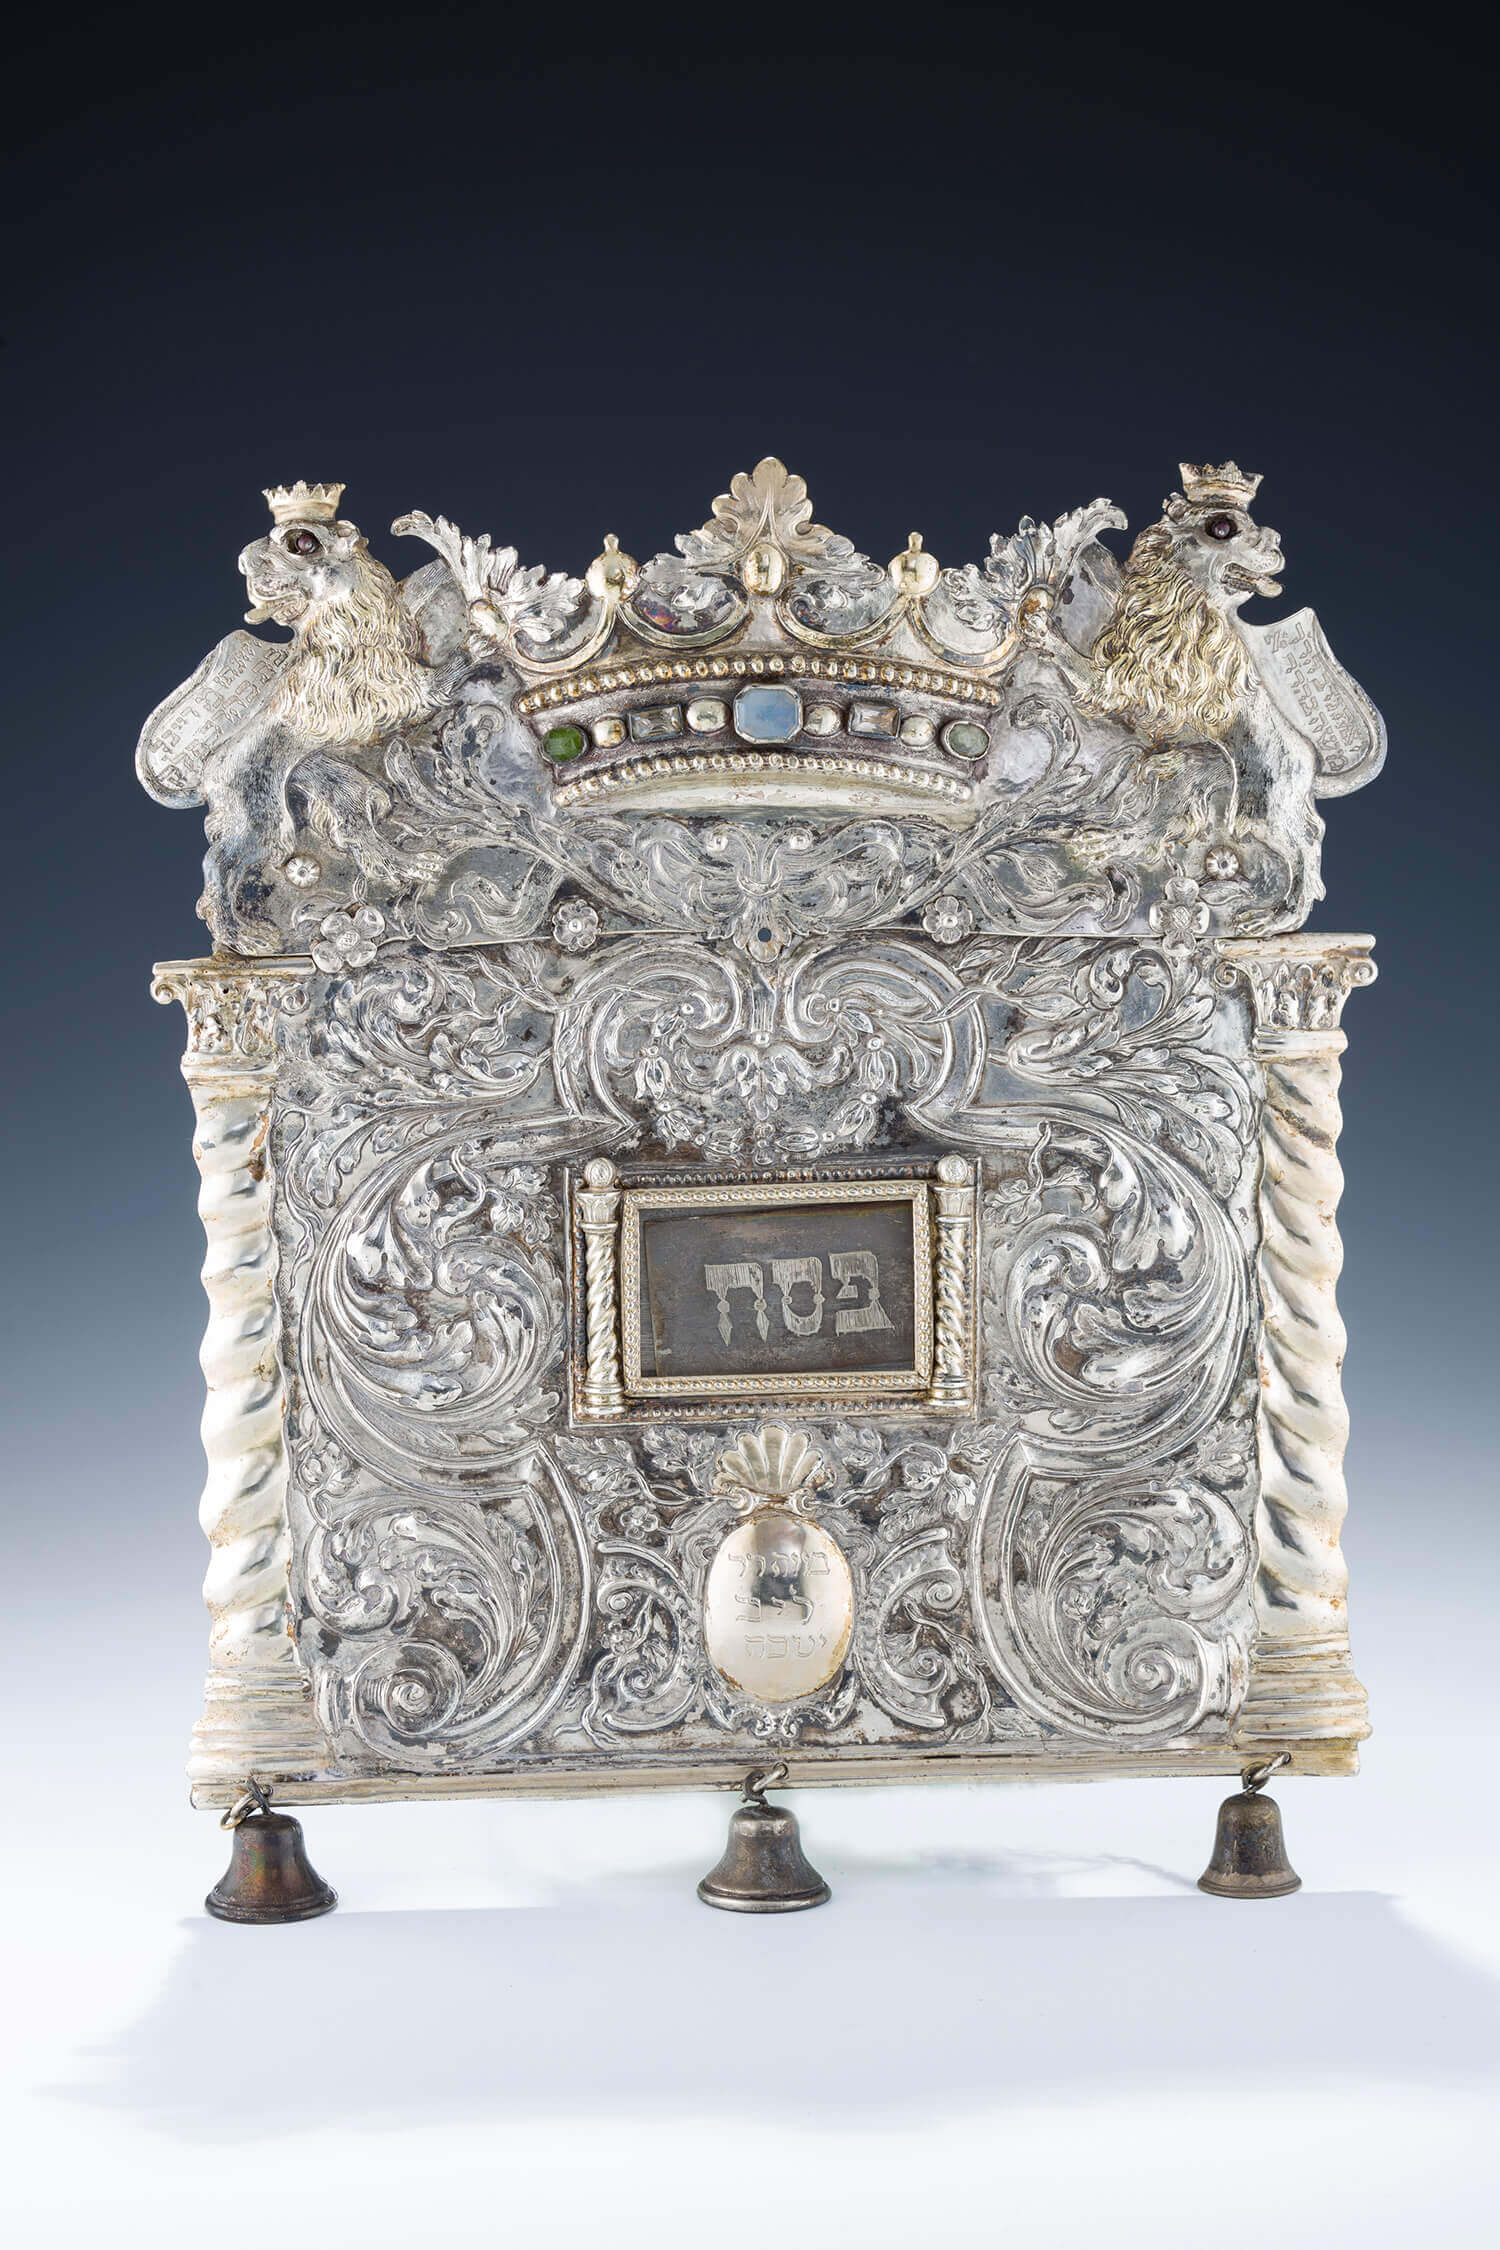 073. A MONUMENTAL SILVER TORAH SHIELD